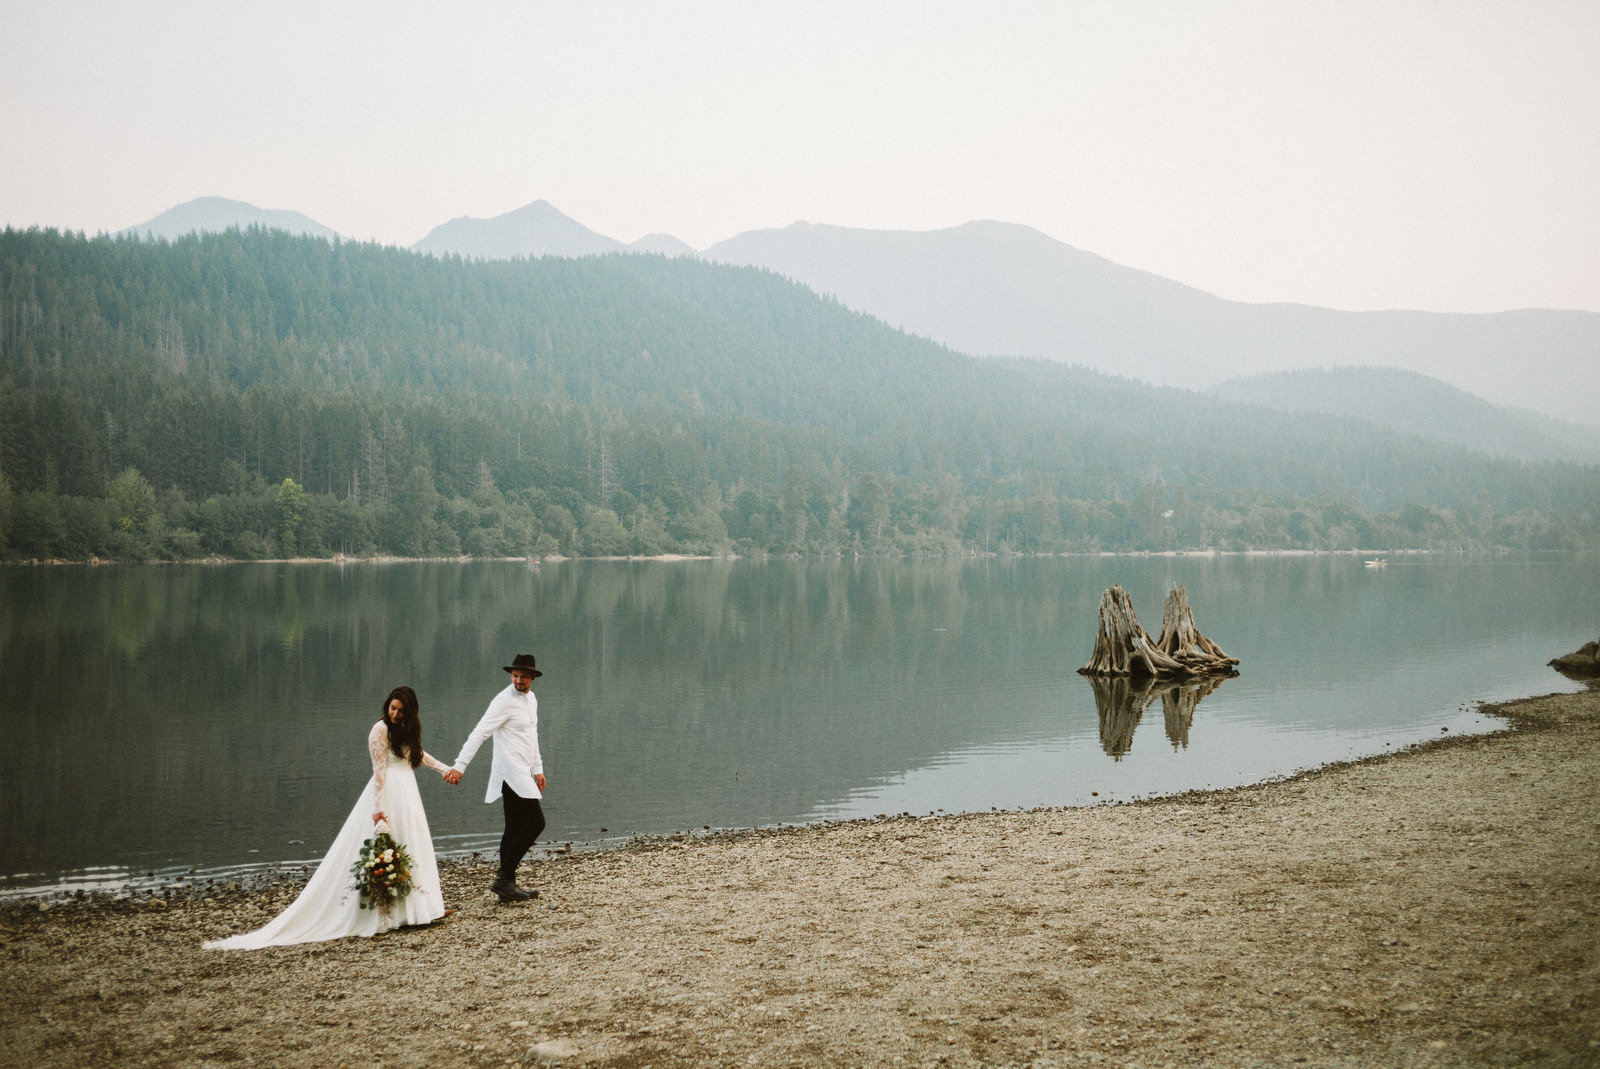 athena-and-camron-seattle-elopement-wedding-benj-haisch-rattlesnake-lake-christian-couple-goals74